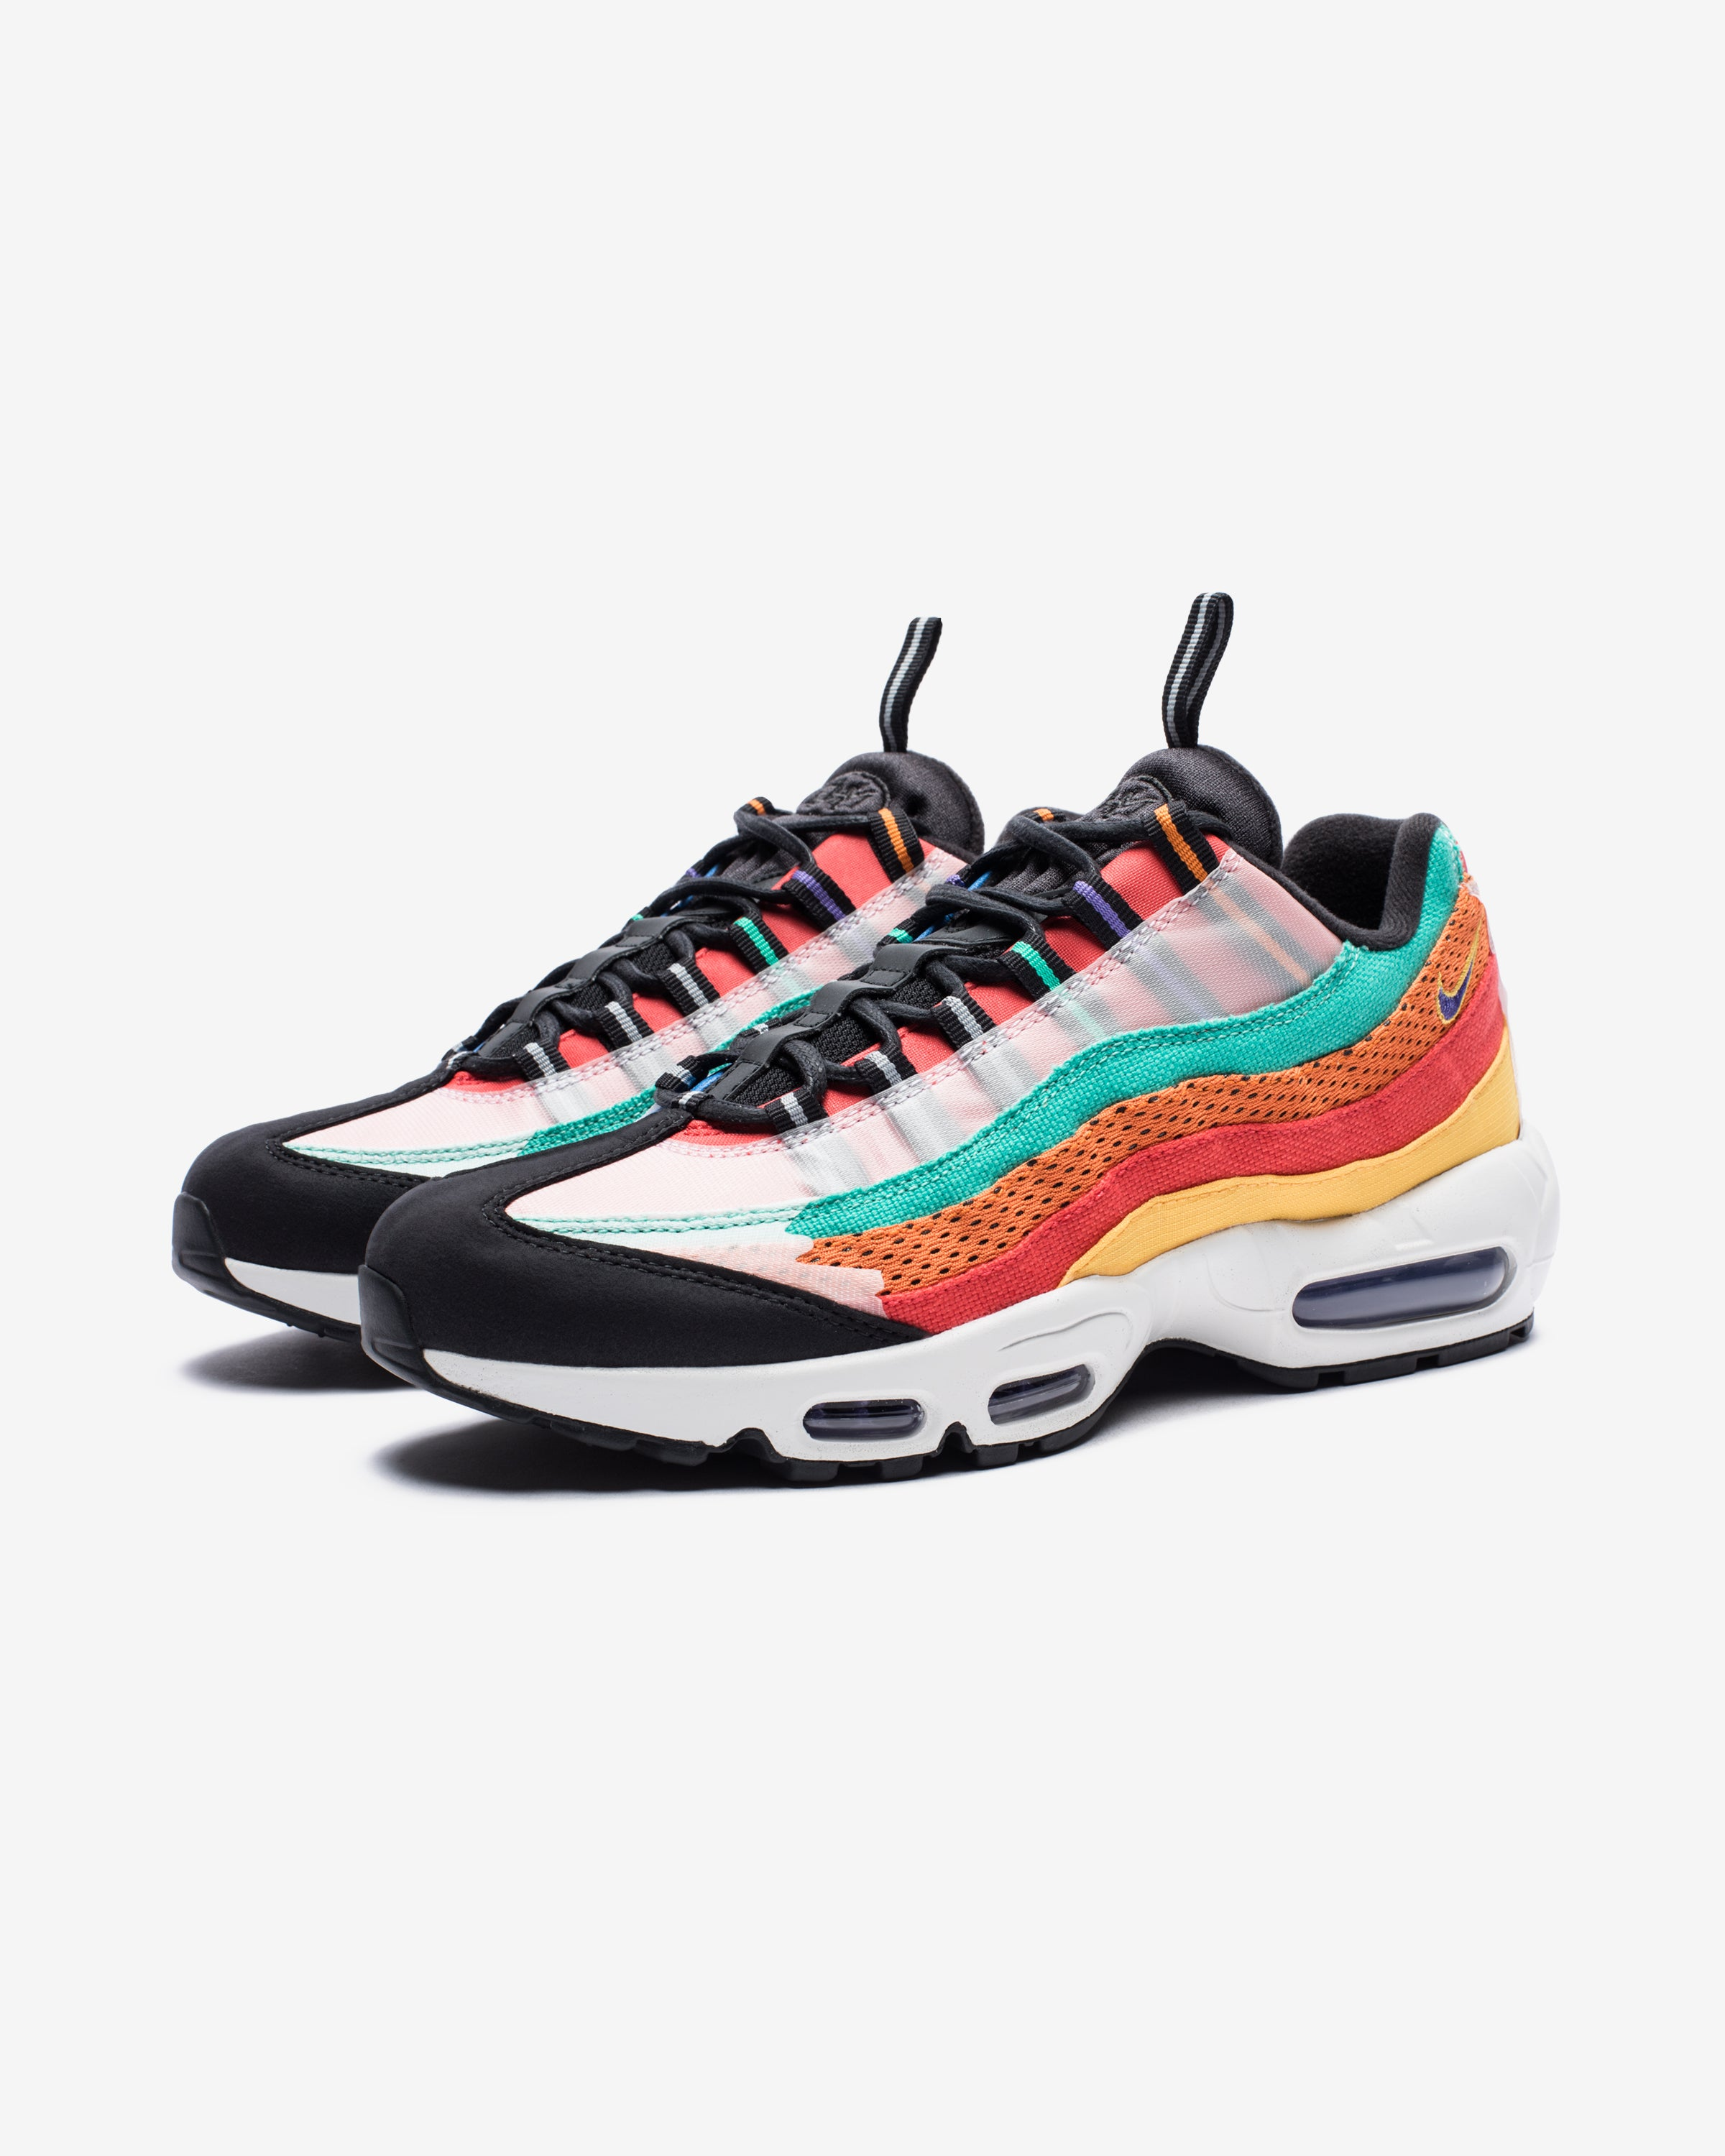 AIR MAX 95 BHM - MULTI-COLOR/KINETICGREEN/PHOTONDUST